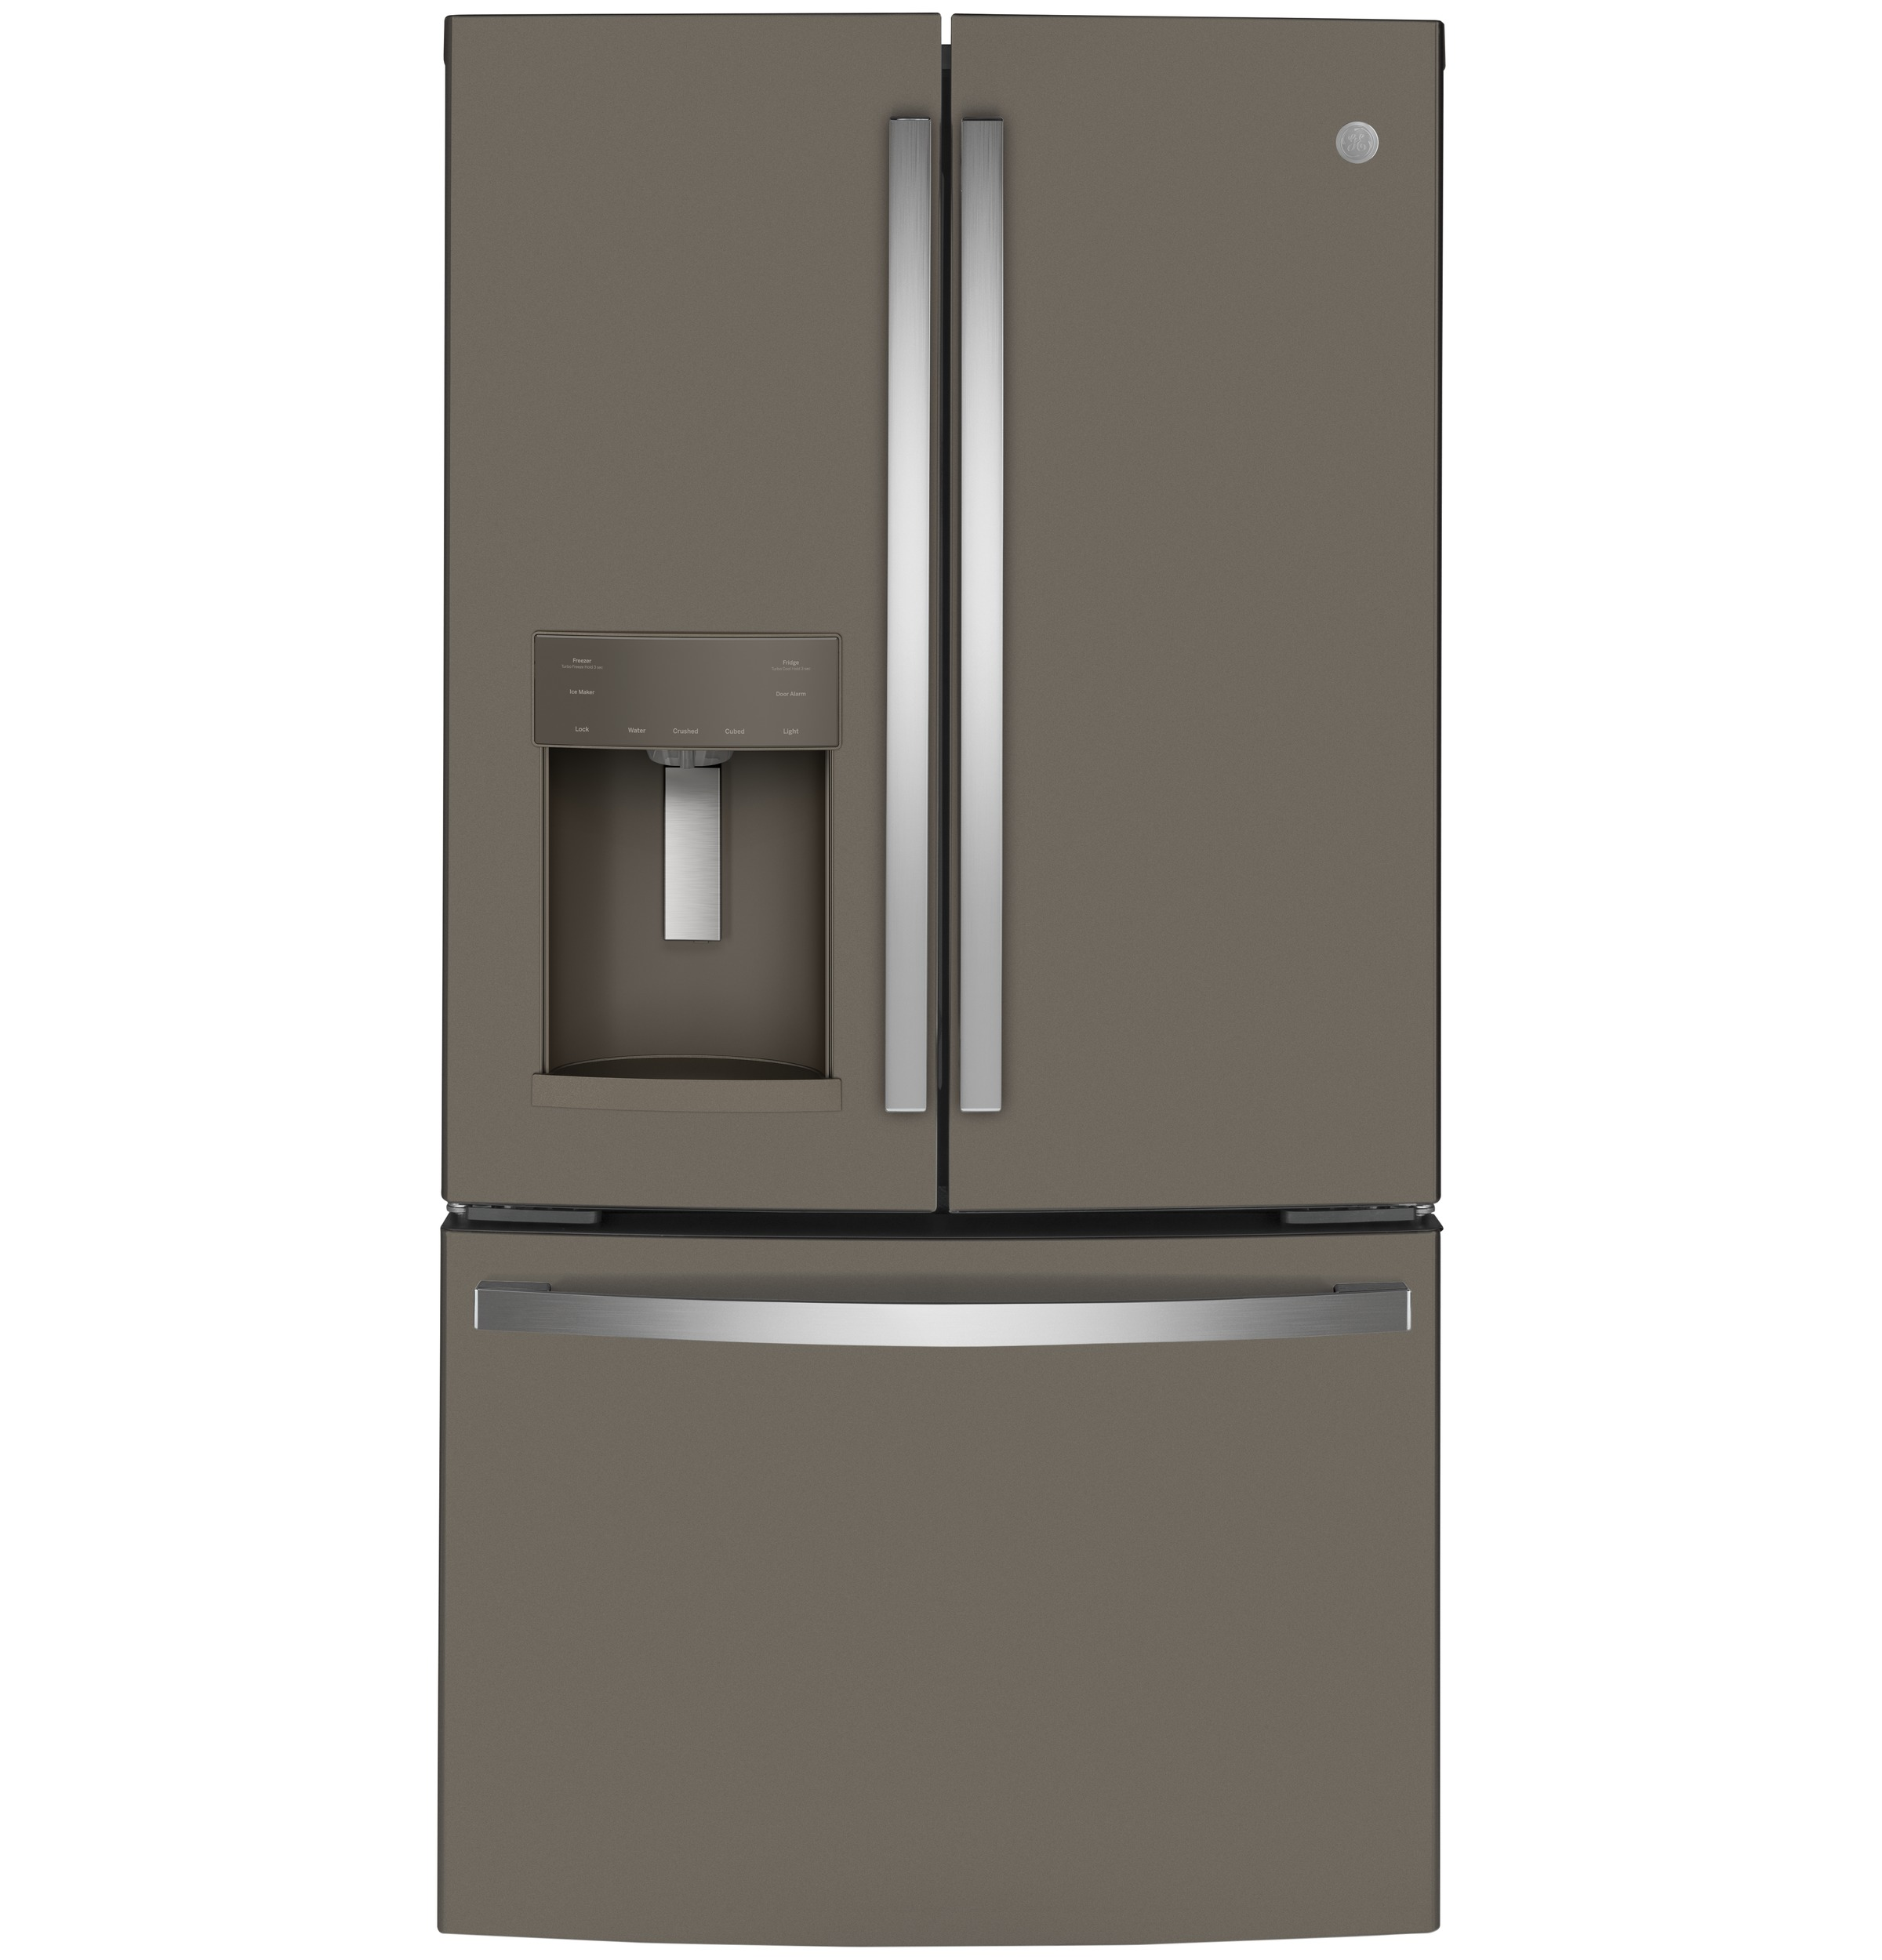 GE GE® ENERGY STAR® 22.1 Cu. Ft. Counter-Depth French-Door Refrigerator